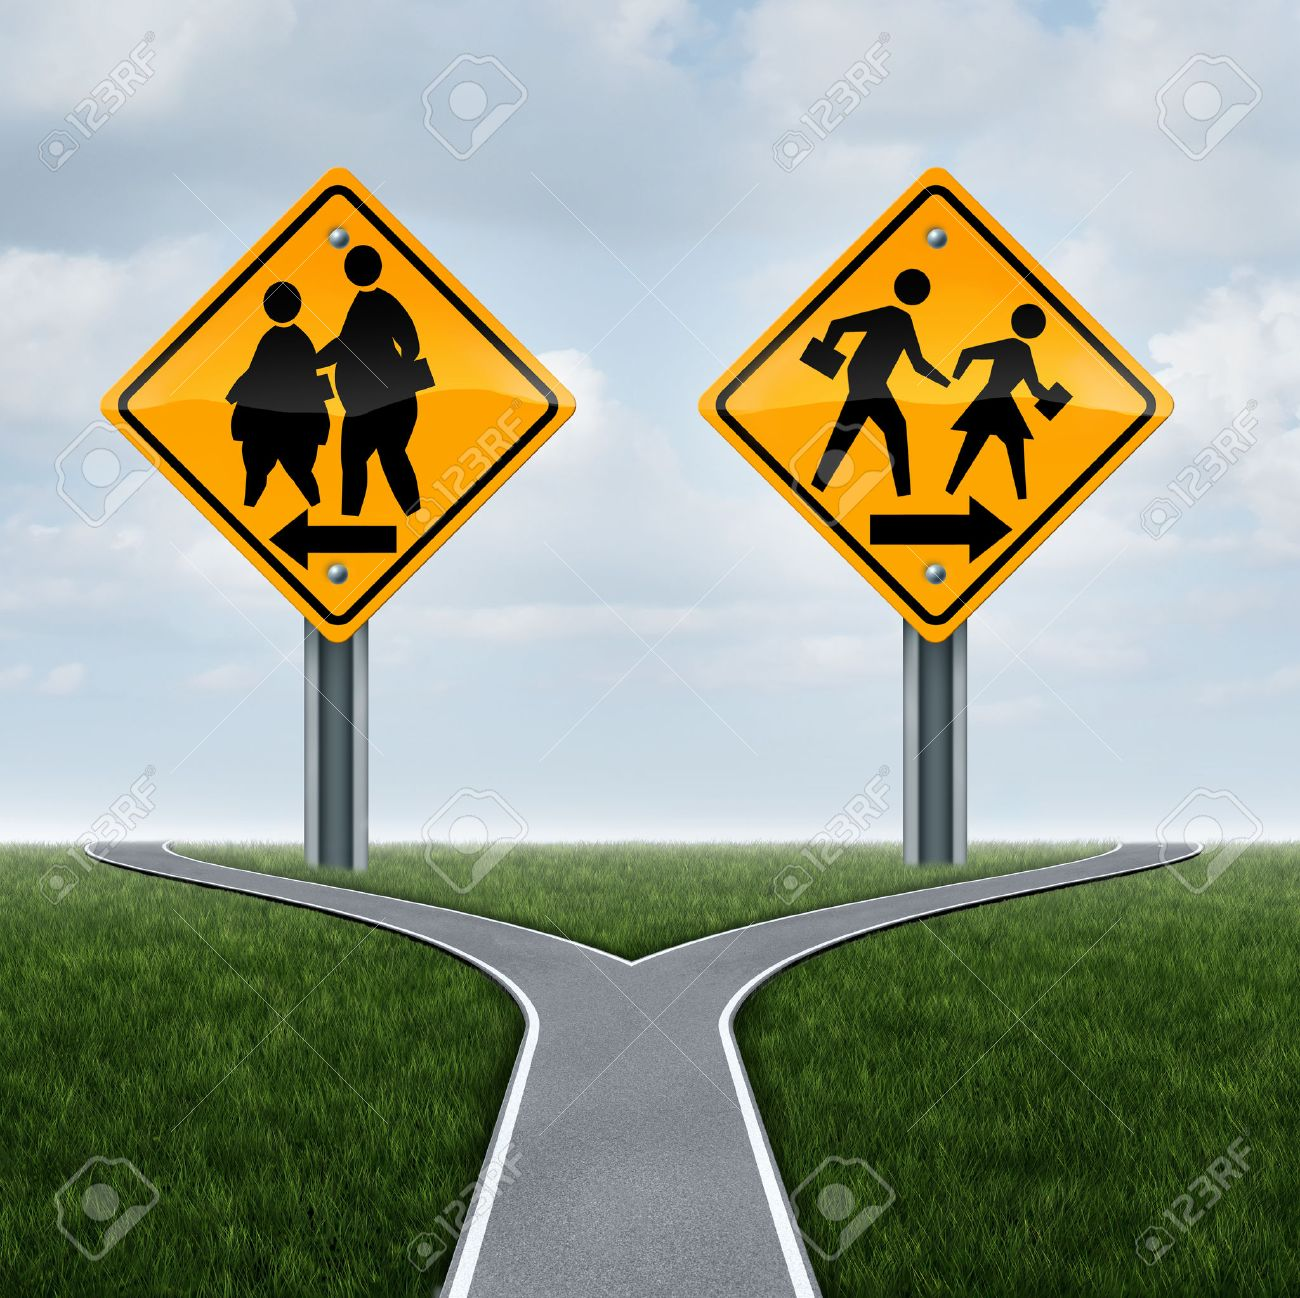 School fitness symbol and physical education concept as overweight obese students on a sign and another with healthy active fit children running as a lifestyle crossroad choice metaphor for kids. - 51142387